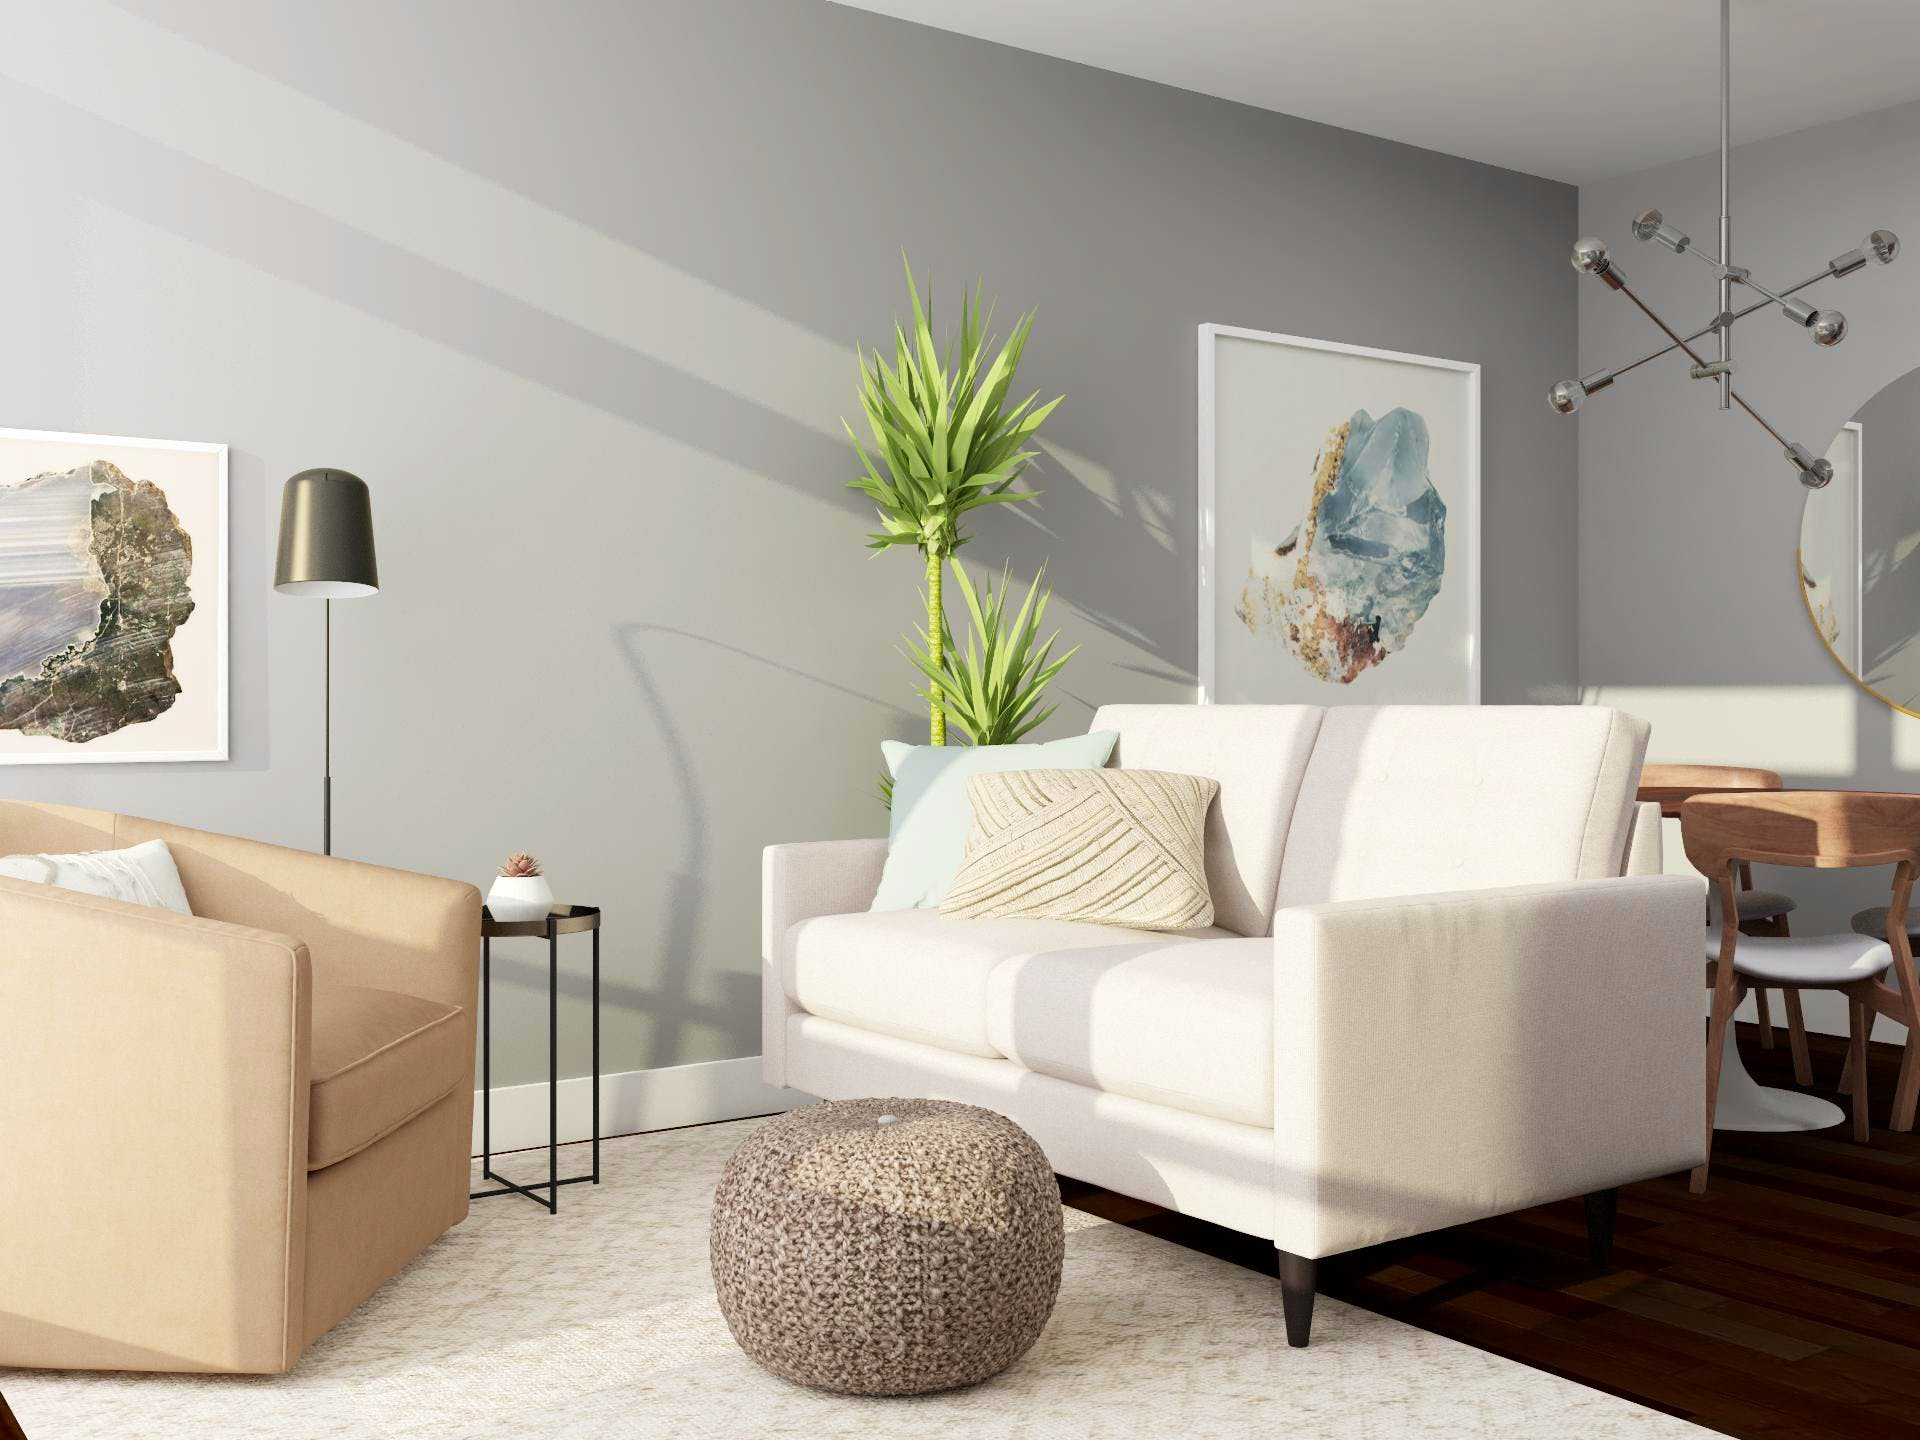 Open-Living Dining Room With Mid-Century-Modern Decor and a Relaxed Neutral Color Palette